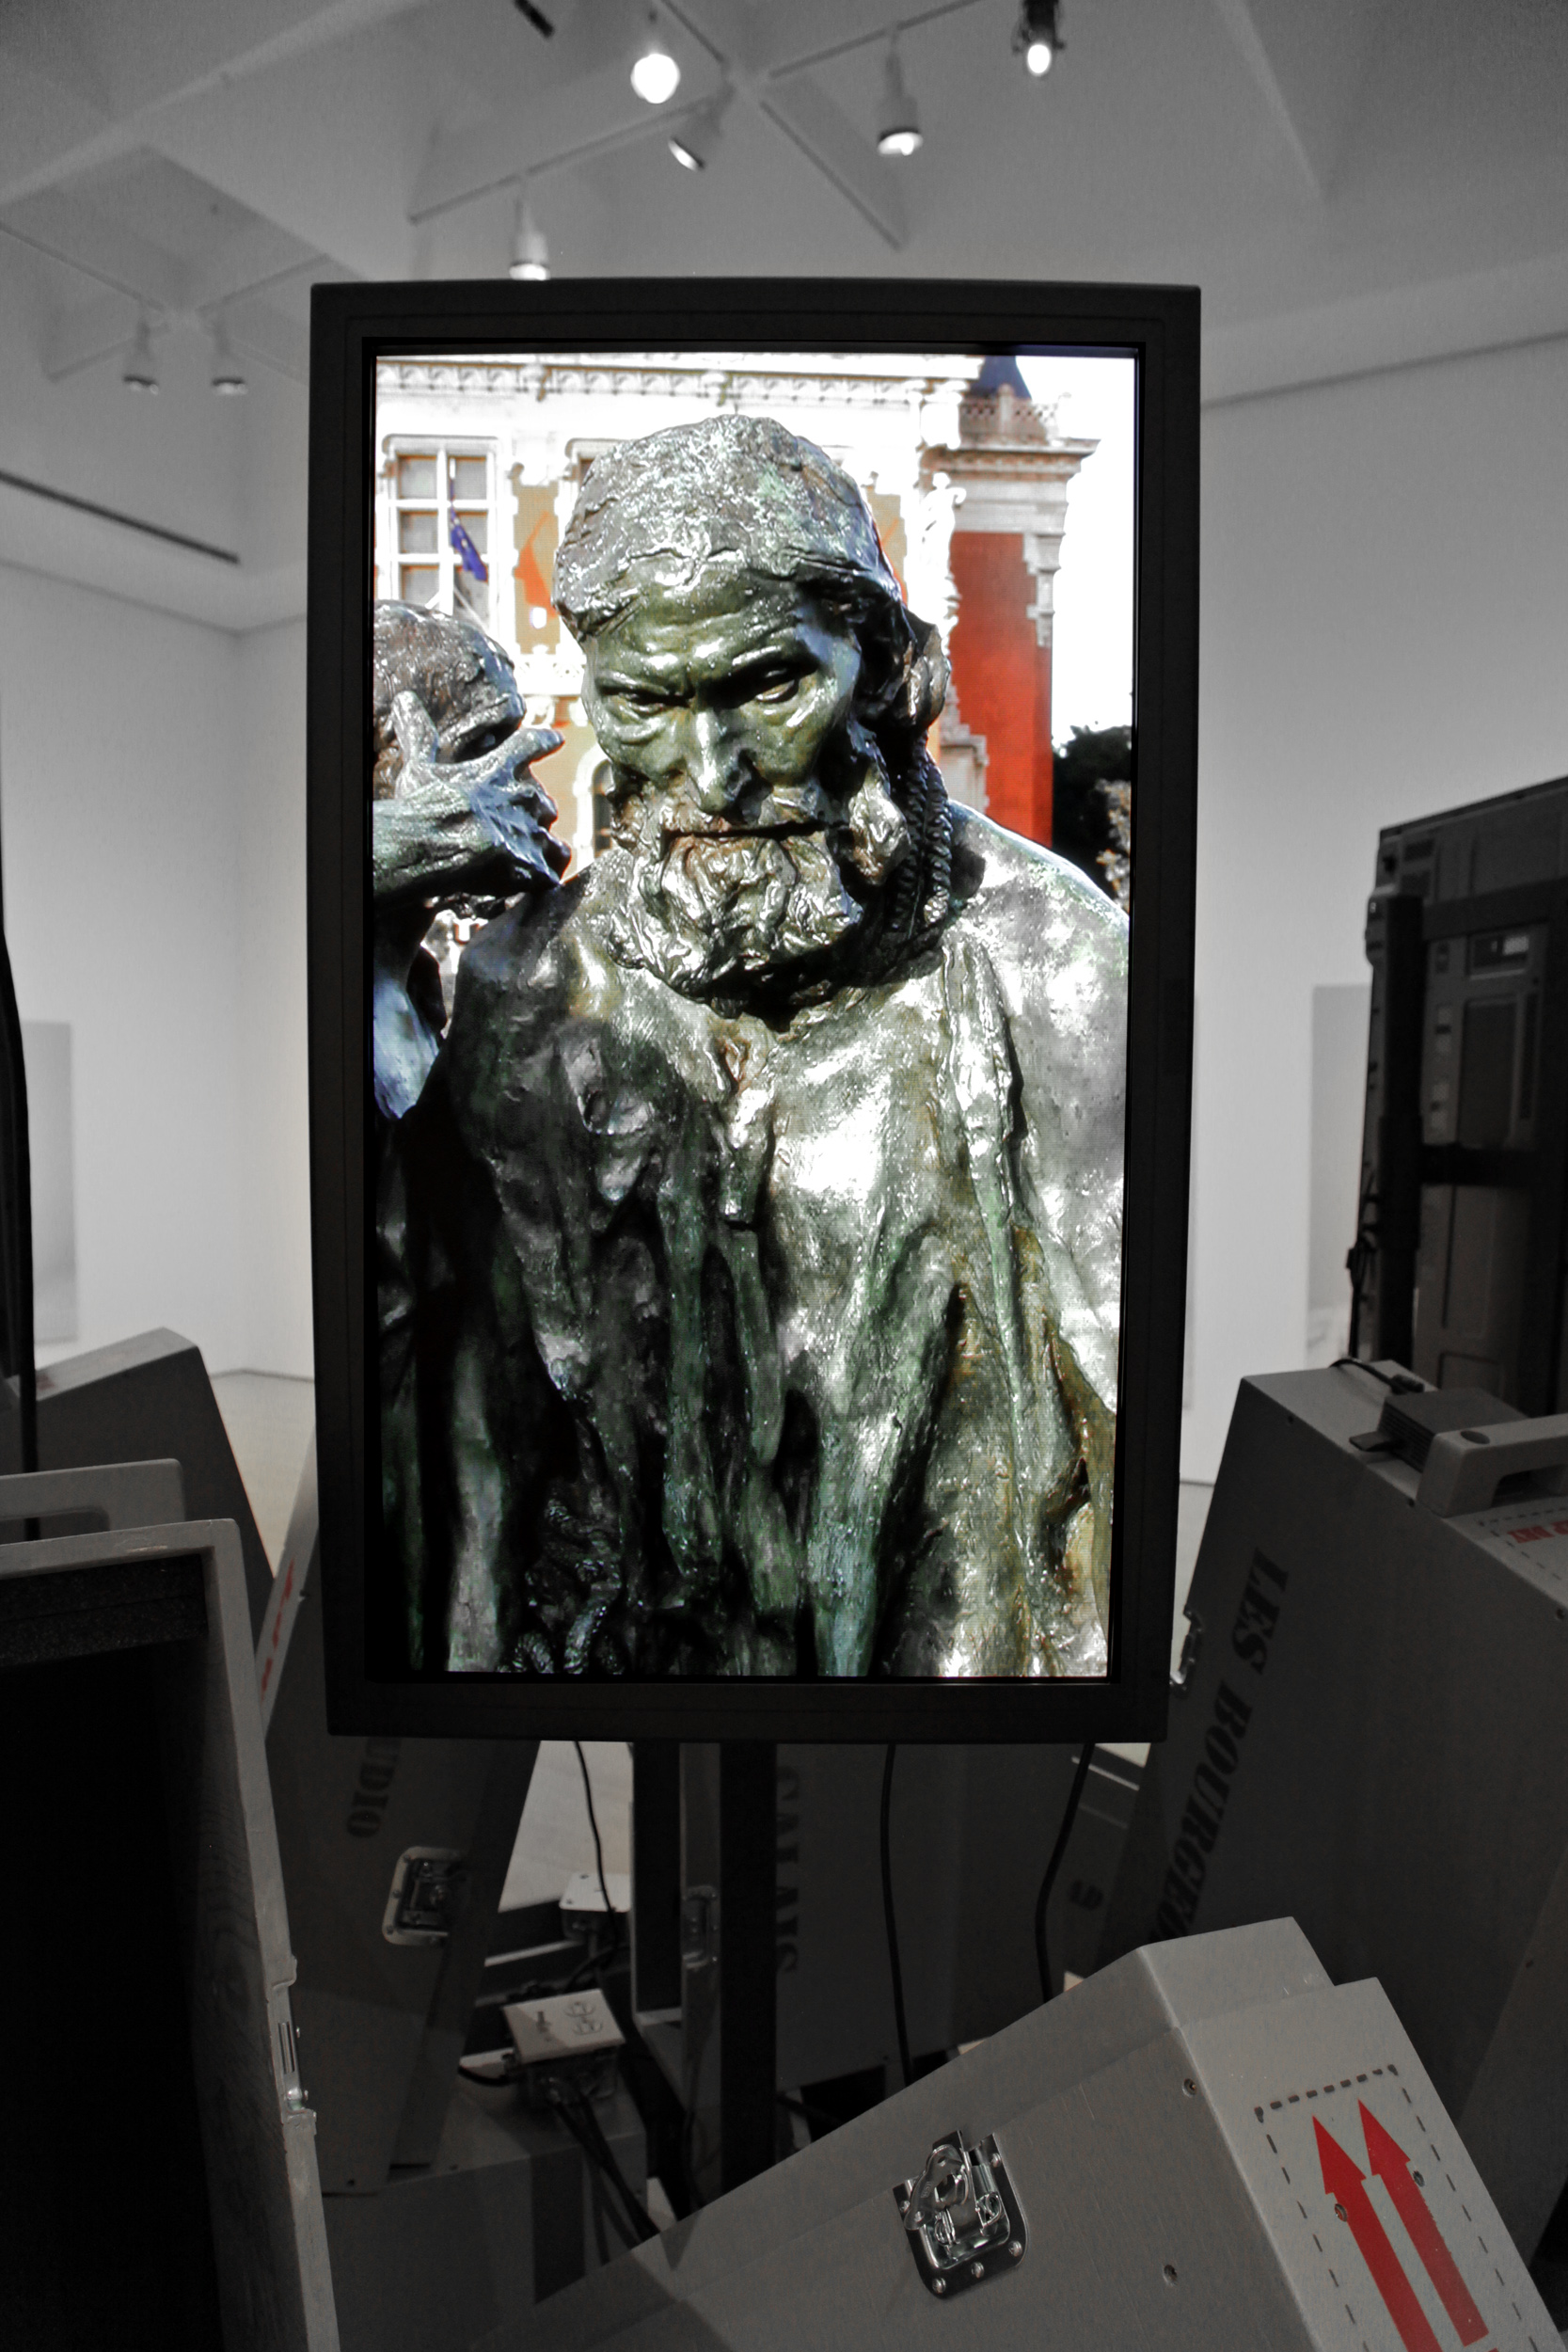 2010_Burghers_Crated_Displaced_Install_15.jpg